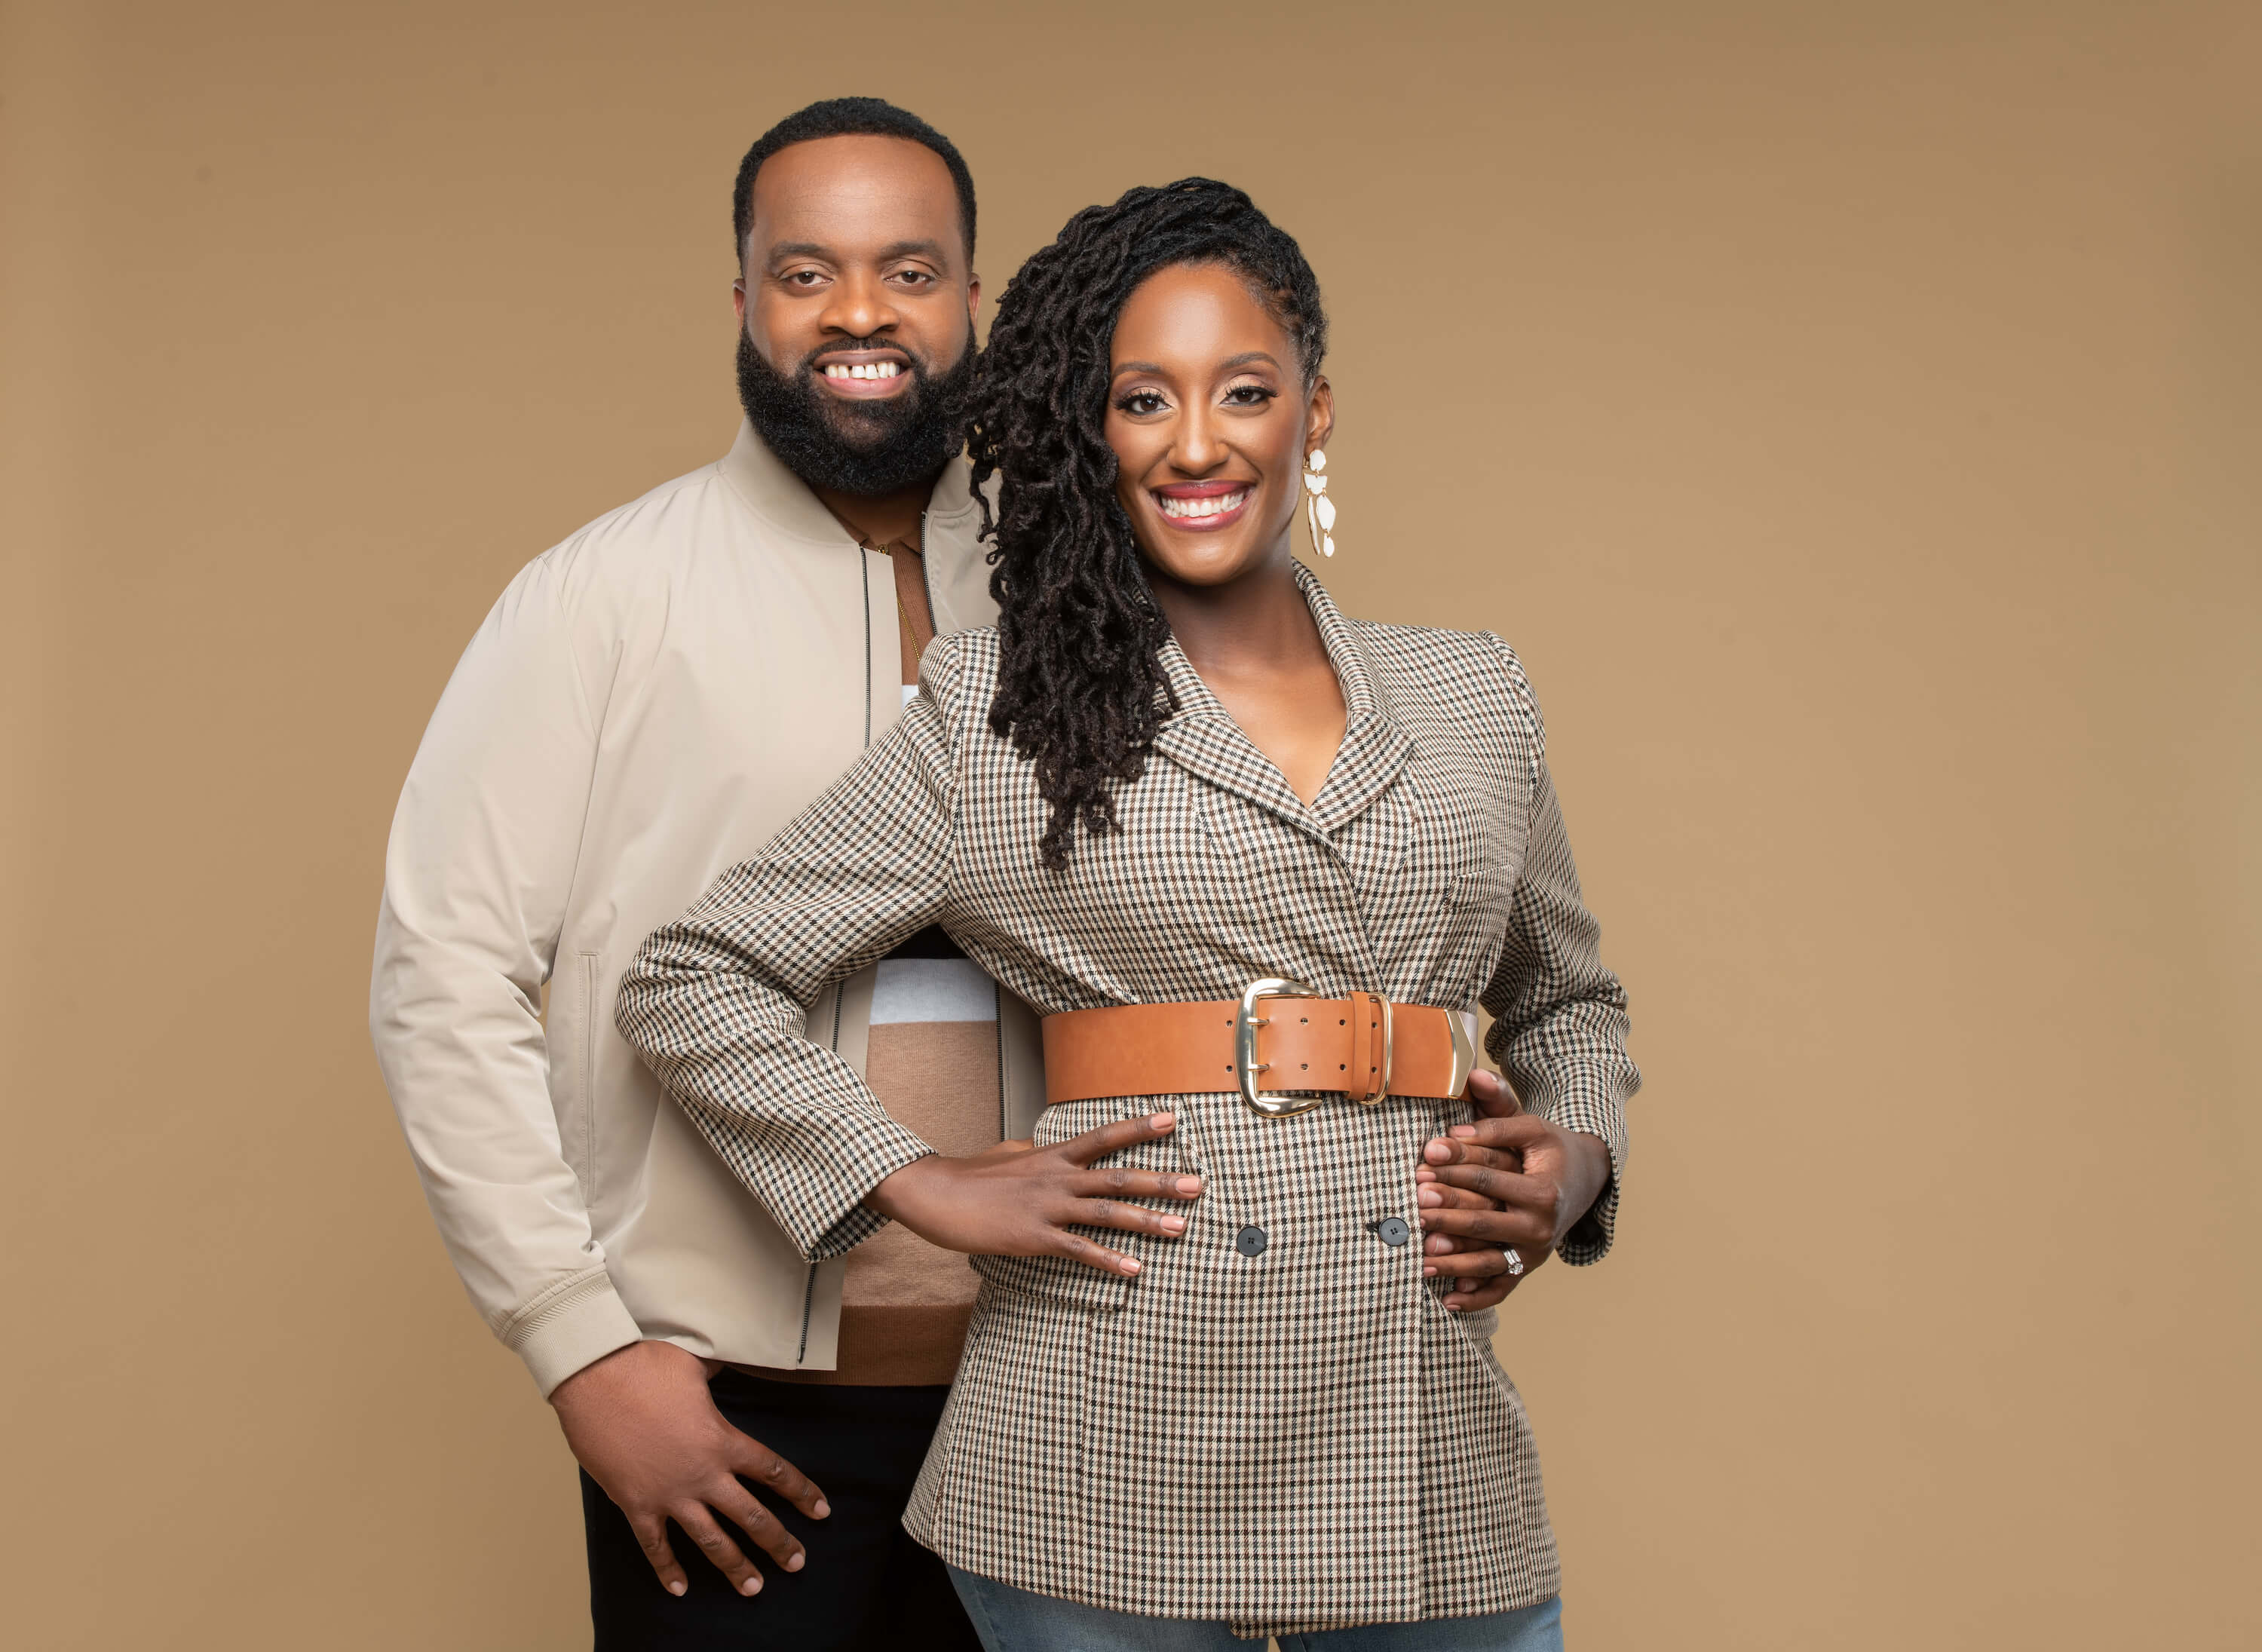 Meet the high-school sweethearts helping people escape debt and build generational wealth